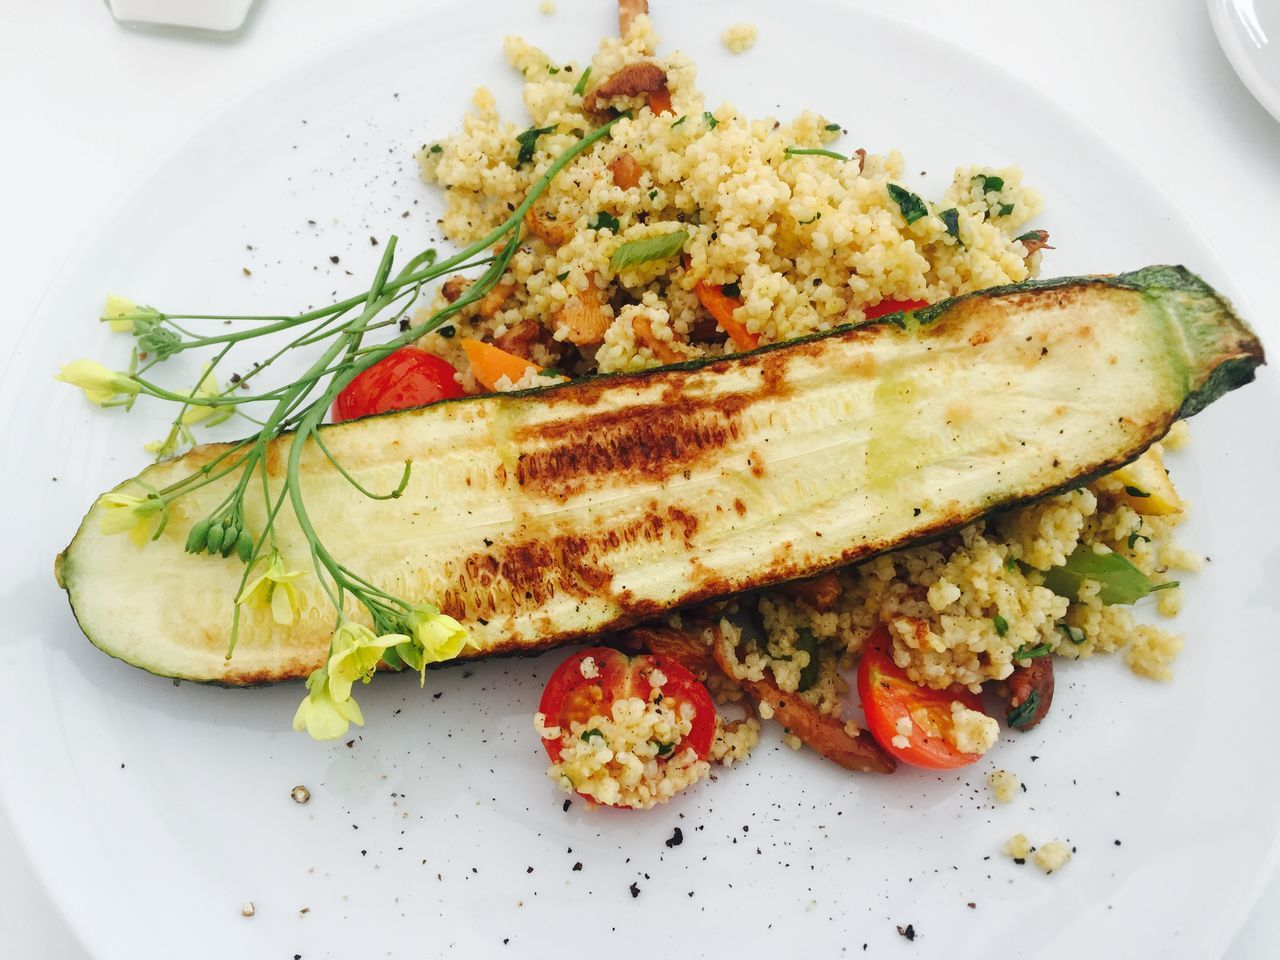 Cooked Courgette Food Food Styling Freshness Healthy Eating Meal Milano Plate Ready-to-eat Serving Size Tomato Vegetable